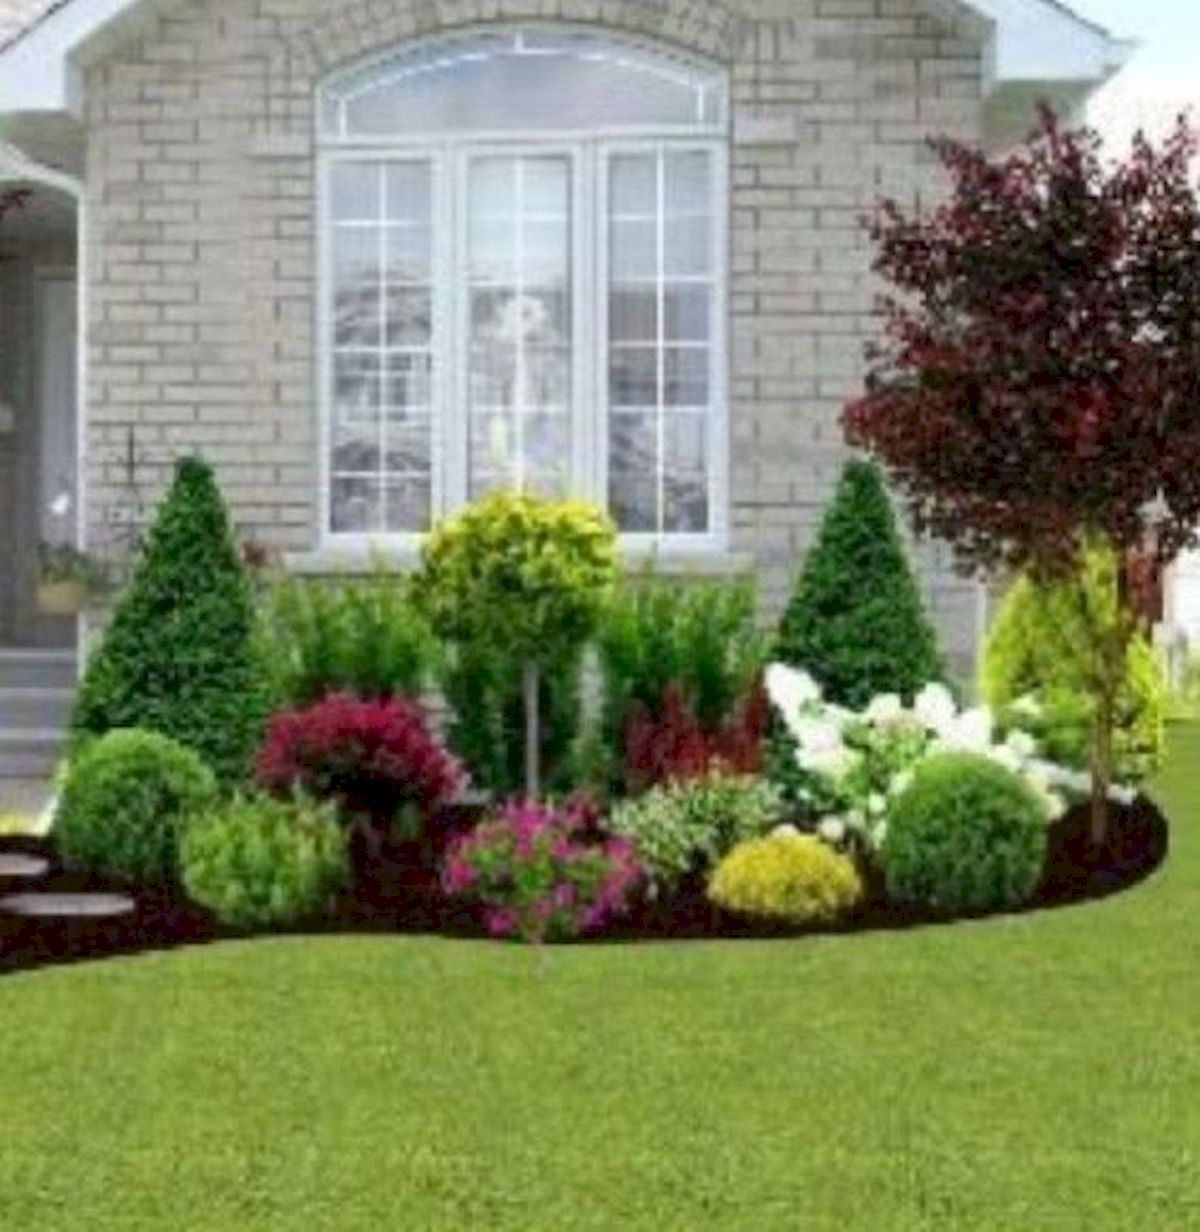 35 Awesome Front Yard Garden Design Ideas - house8055.com